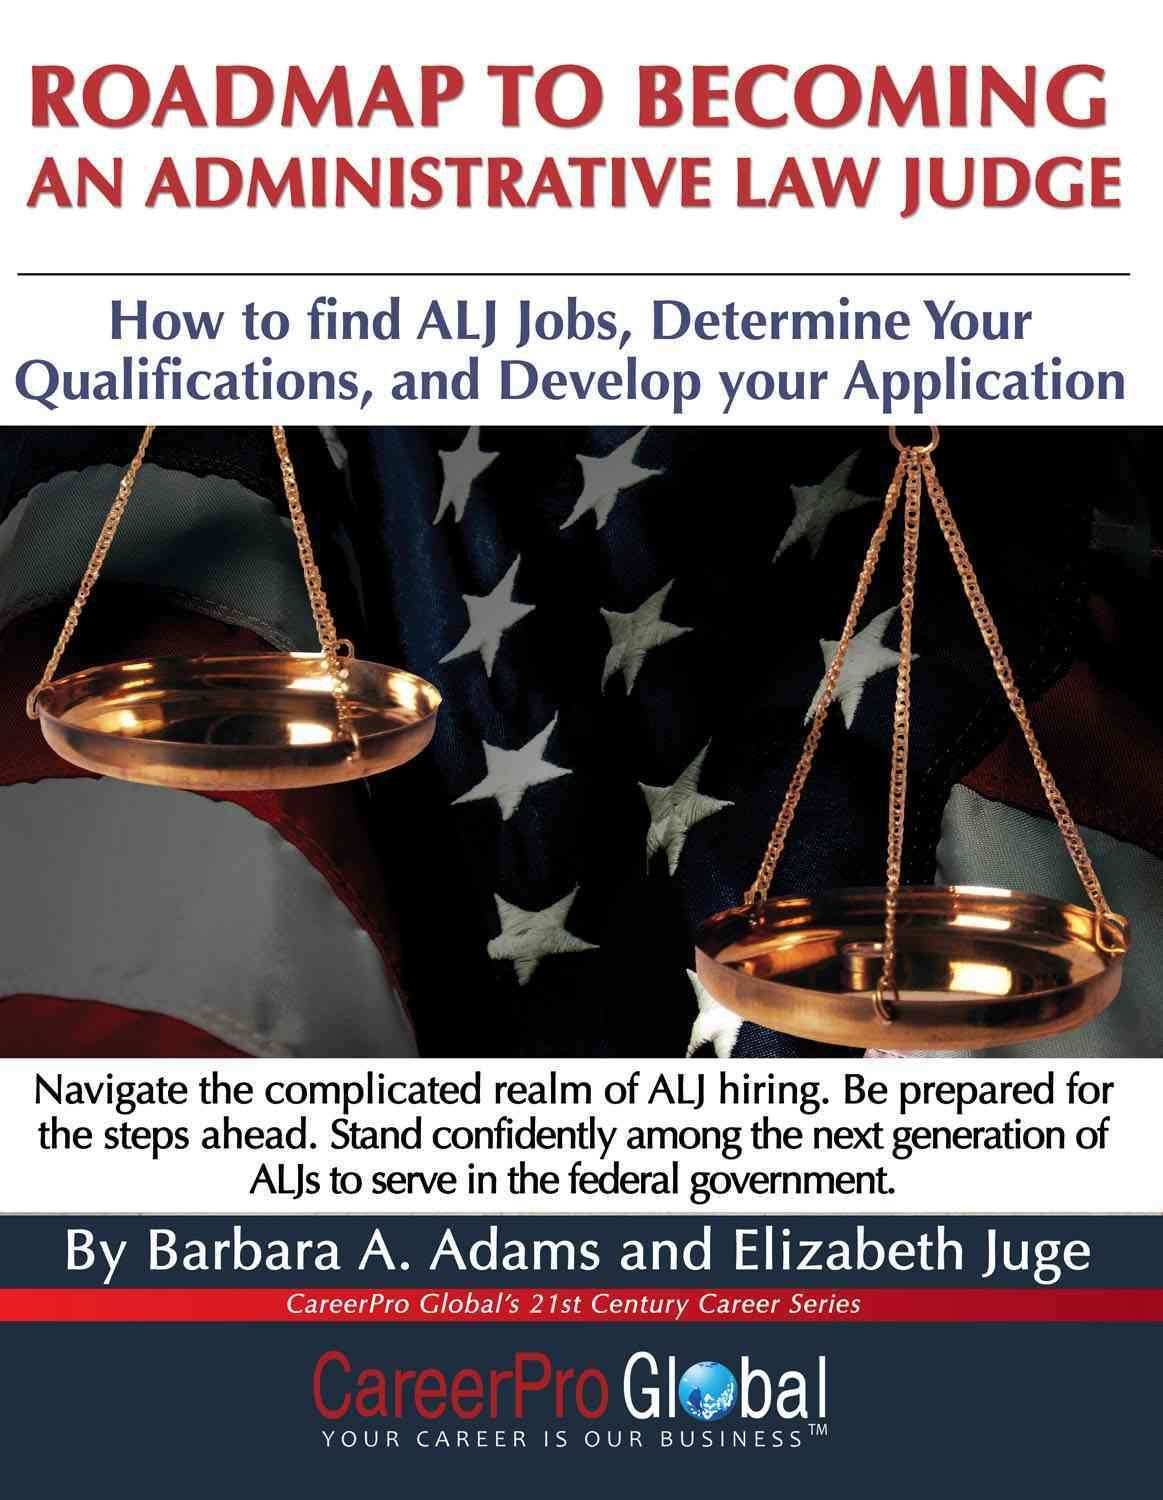 Roadmap to Becoming an Administrative Law Judge: How to Find ALJ Jobs, Determine Your Qualifications, and Develop... (Paperback)